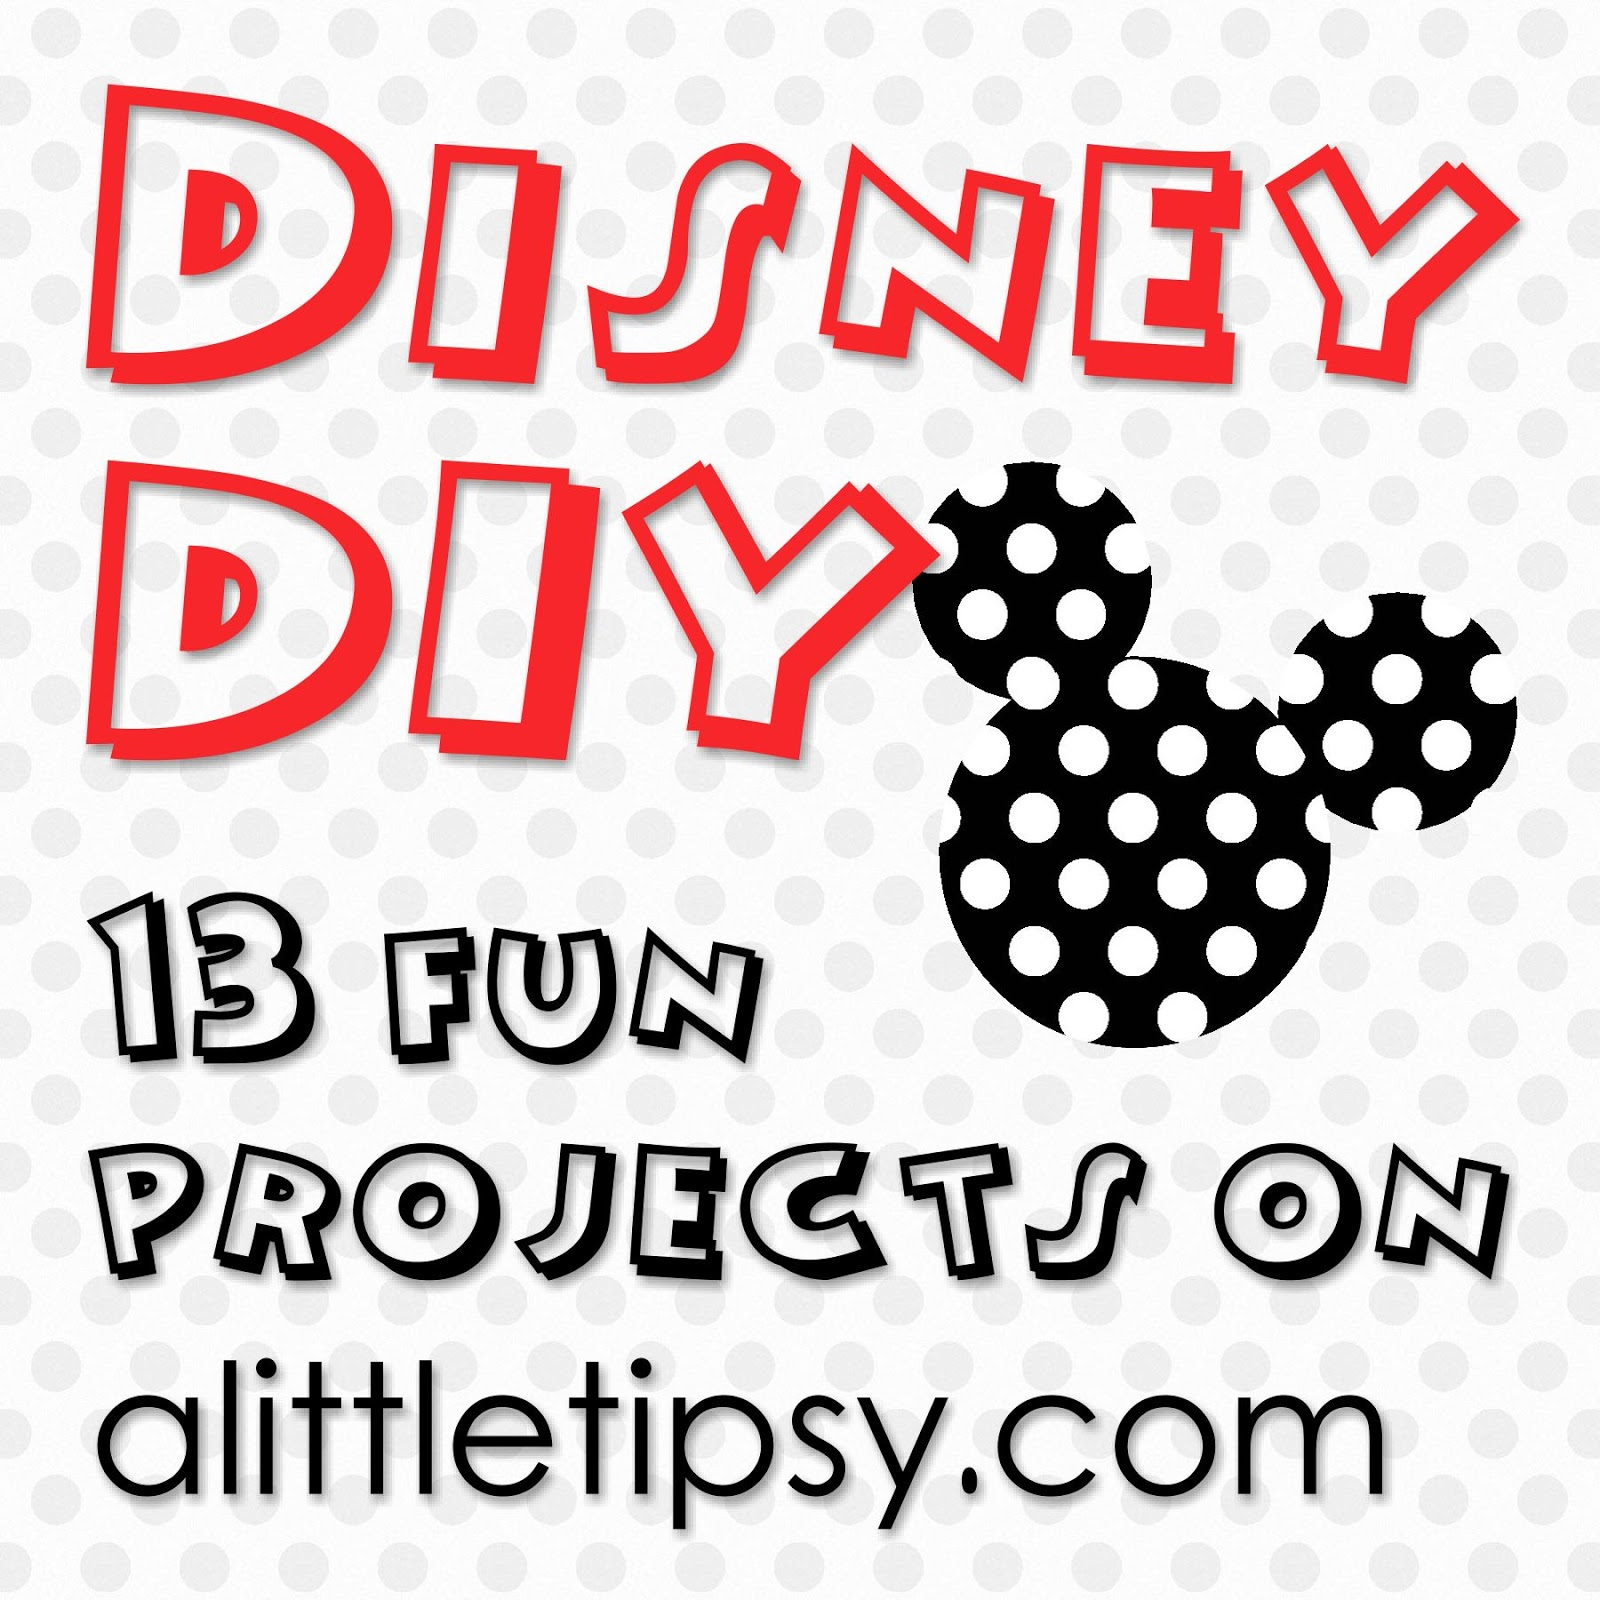 Disney diy archives a little tipsy without further adeiu we give you all the projects from our disney diy series solutioingenieria Choice Image